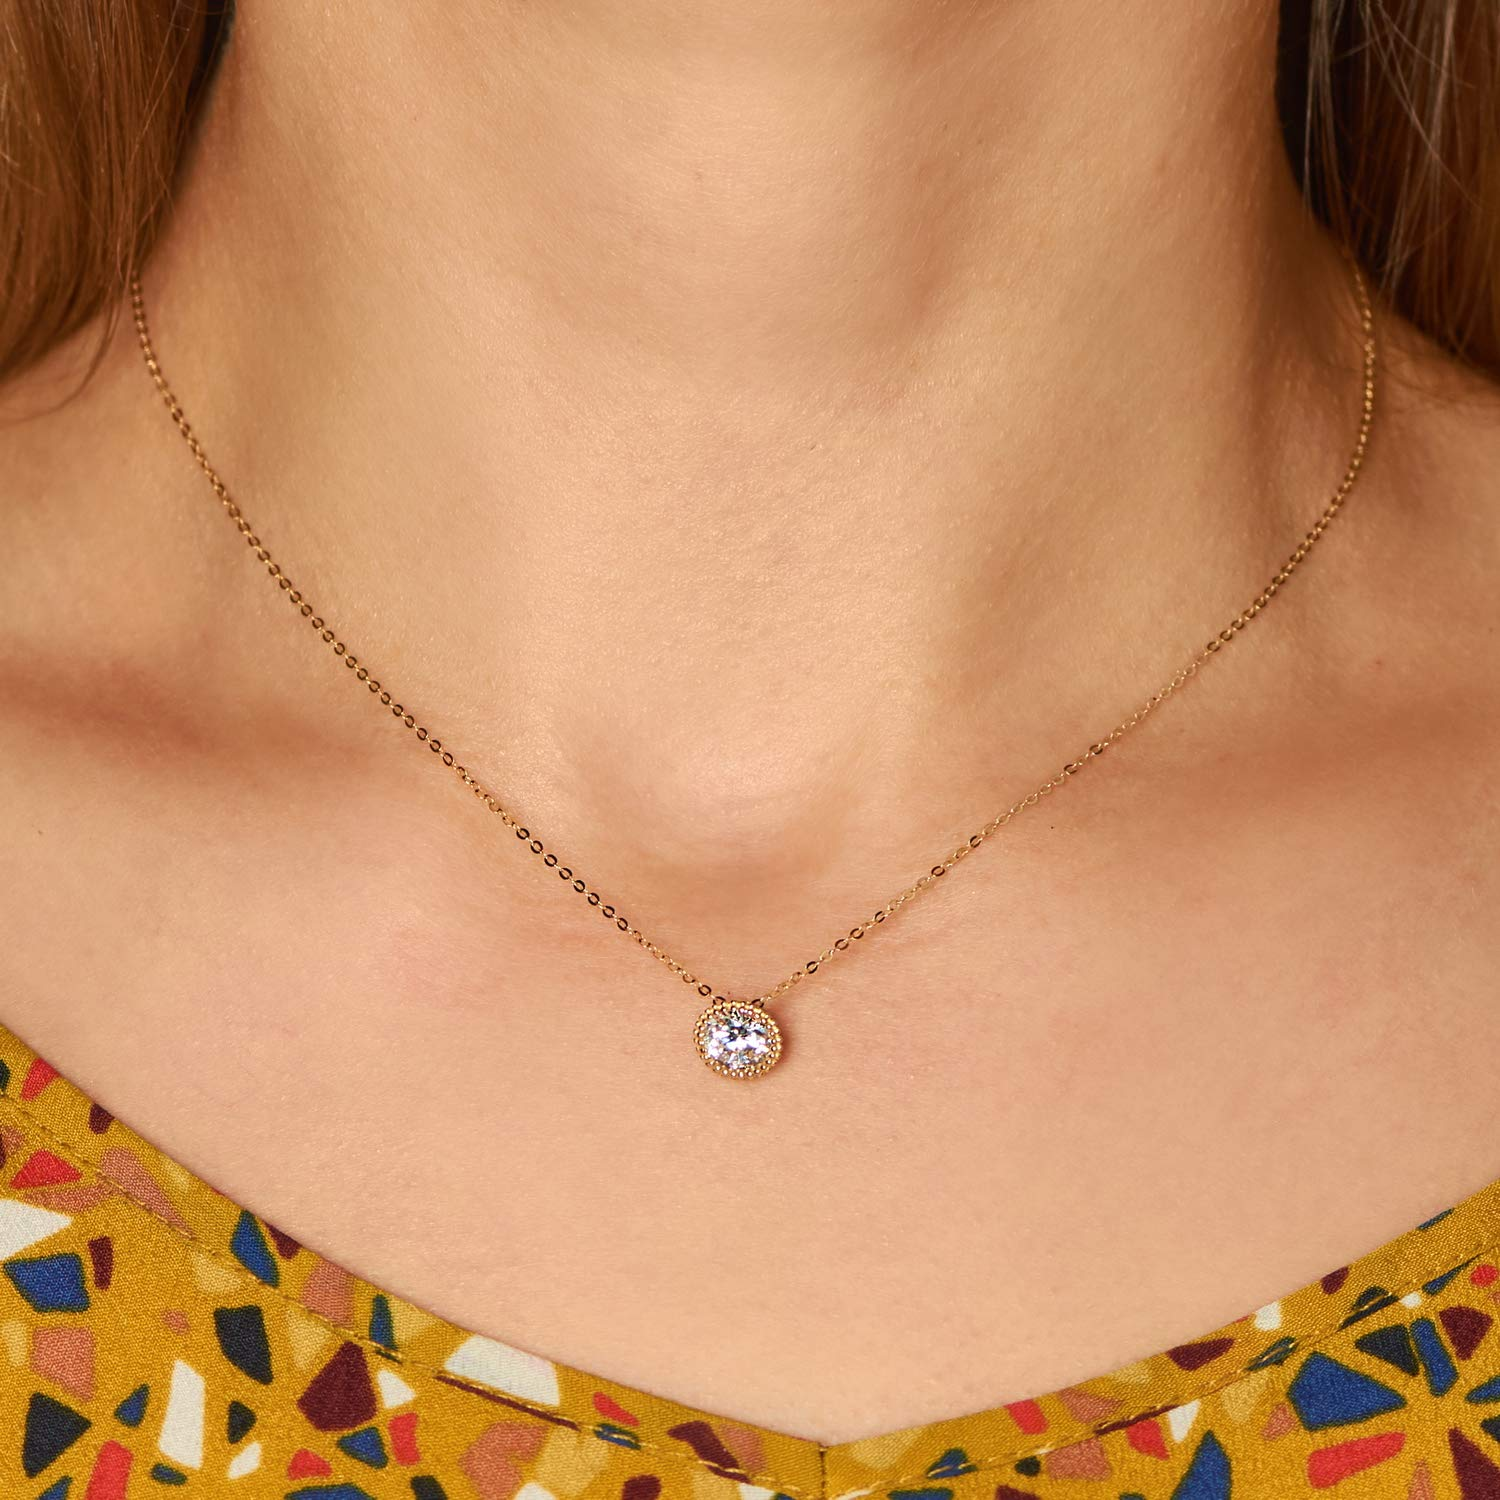 Olivias Collection 14kt Yellow Gold Solitare Multi Shape Pendant Necklace with 16 inch Chain